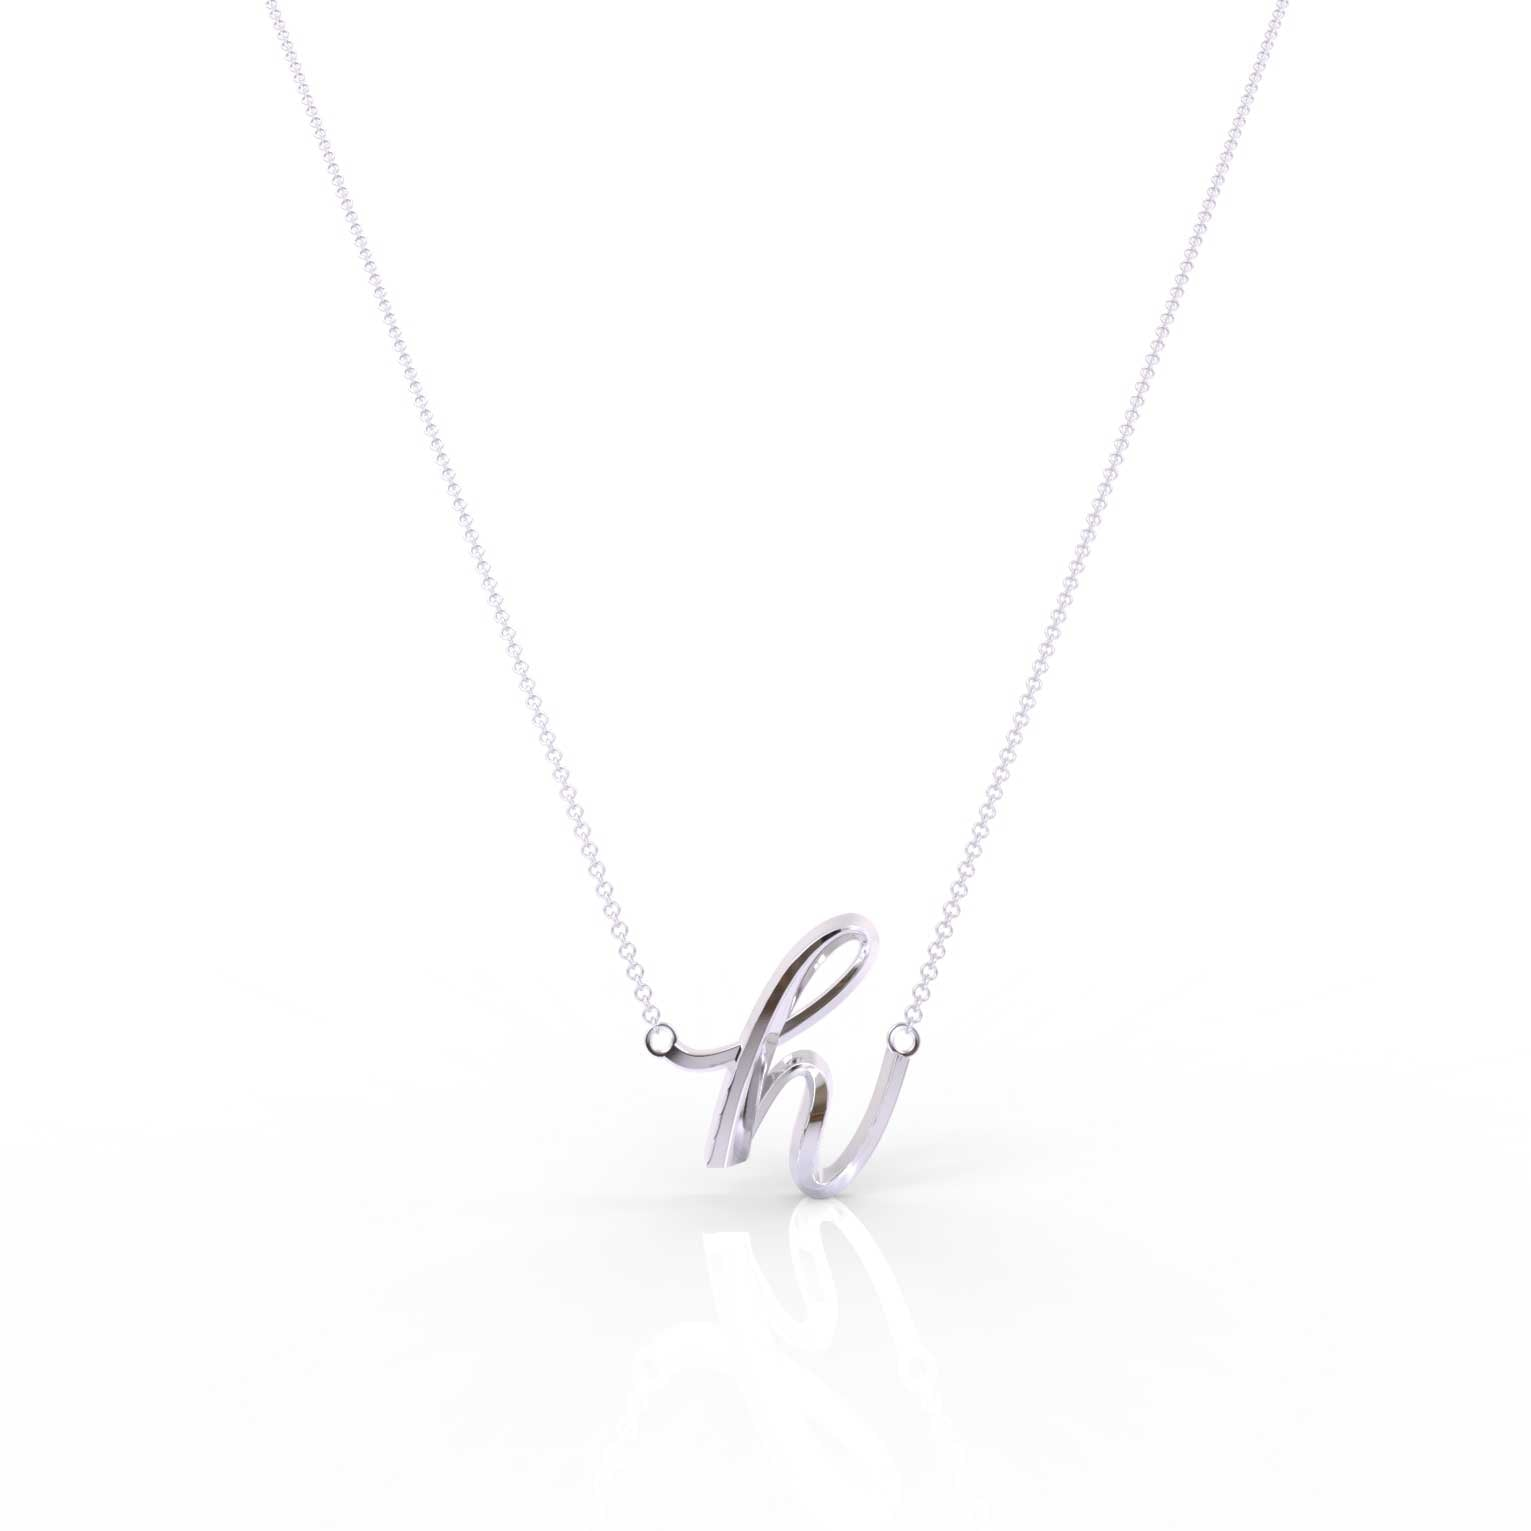 "The Love Collect - ""H"" Necklace"